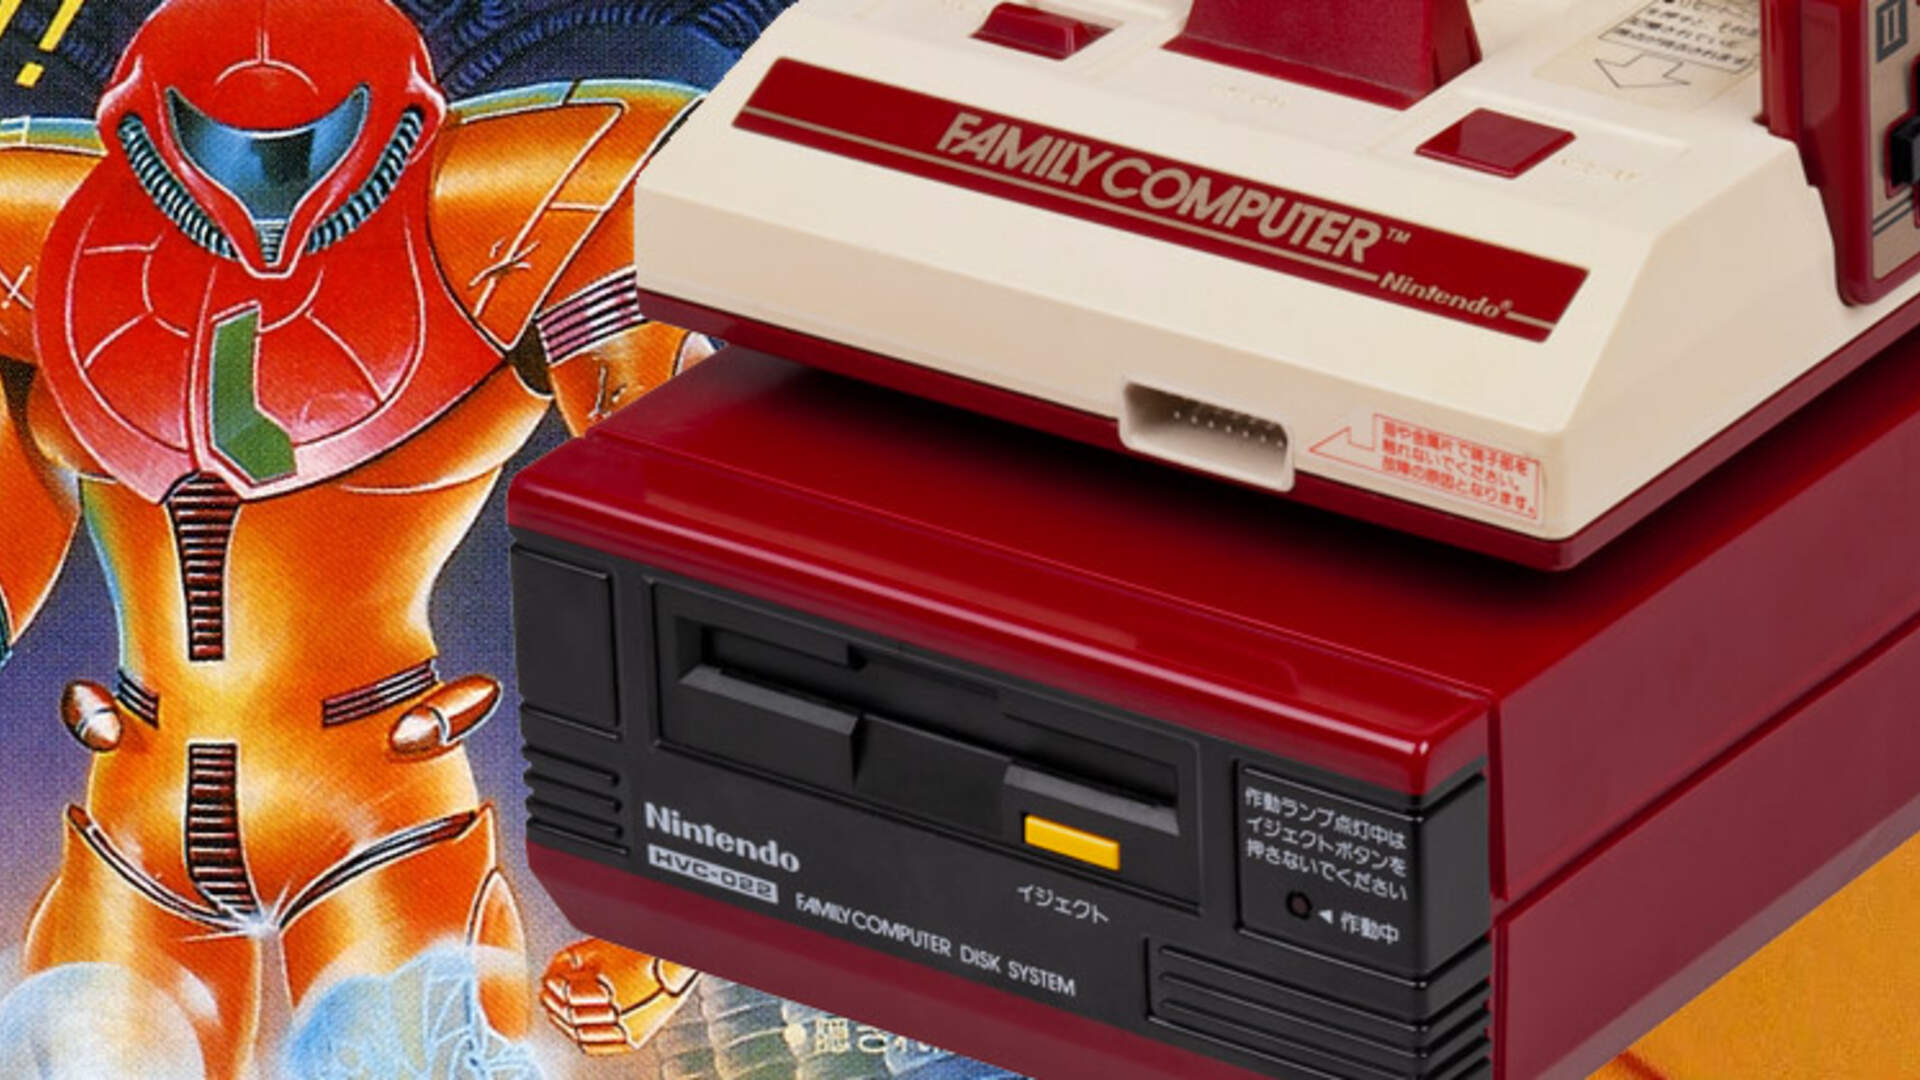 On Discovering the Famicom Disk System: Nintendo's Alternate Reality Version of the NES